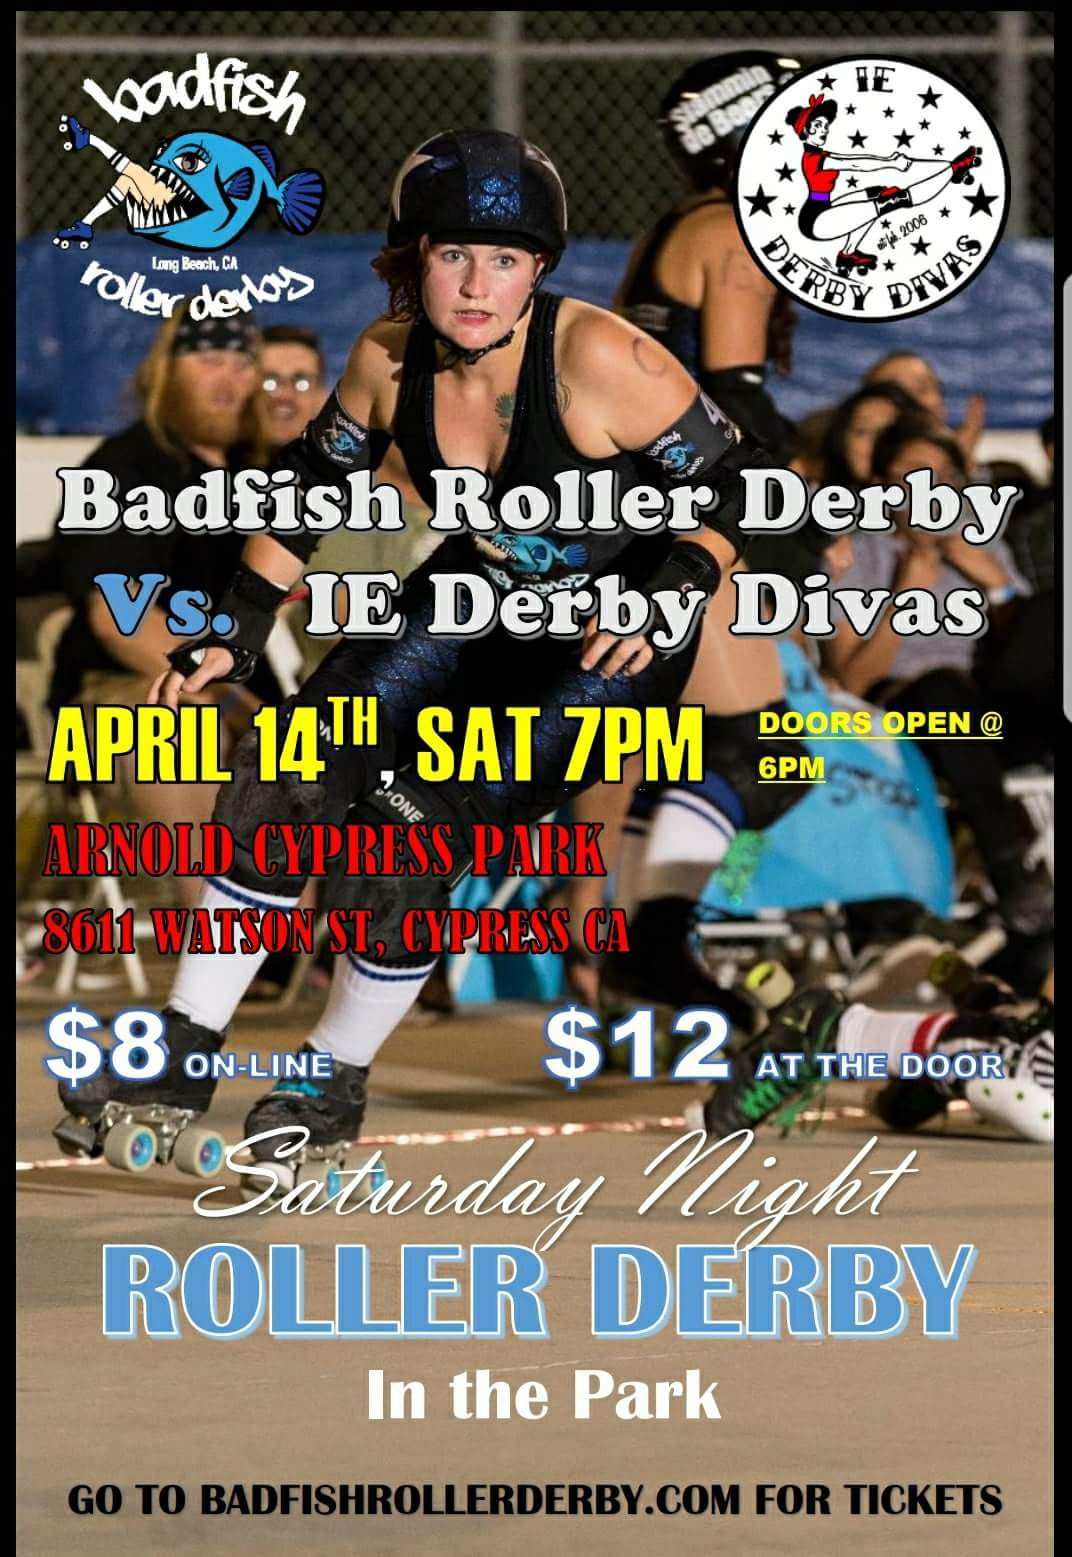 April 14, 2018 Badfish Roller Derby vs. IE Derby Divas